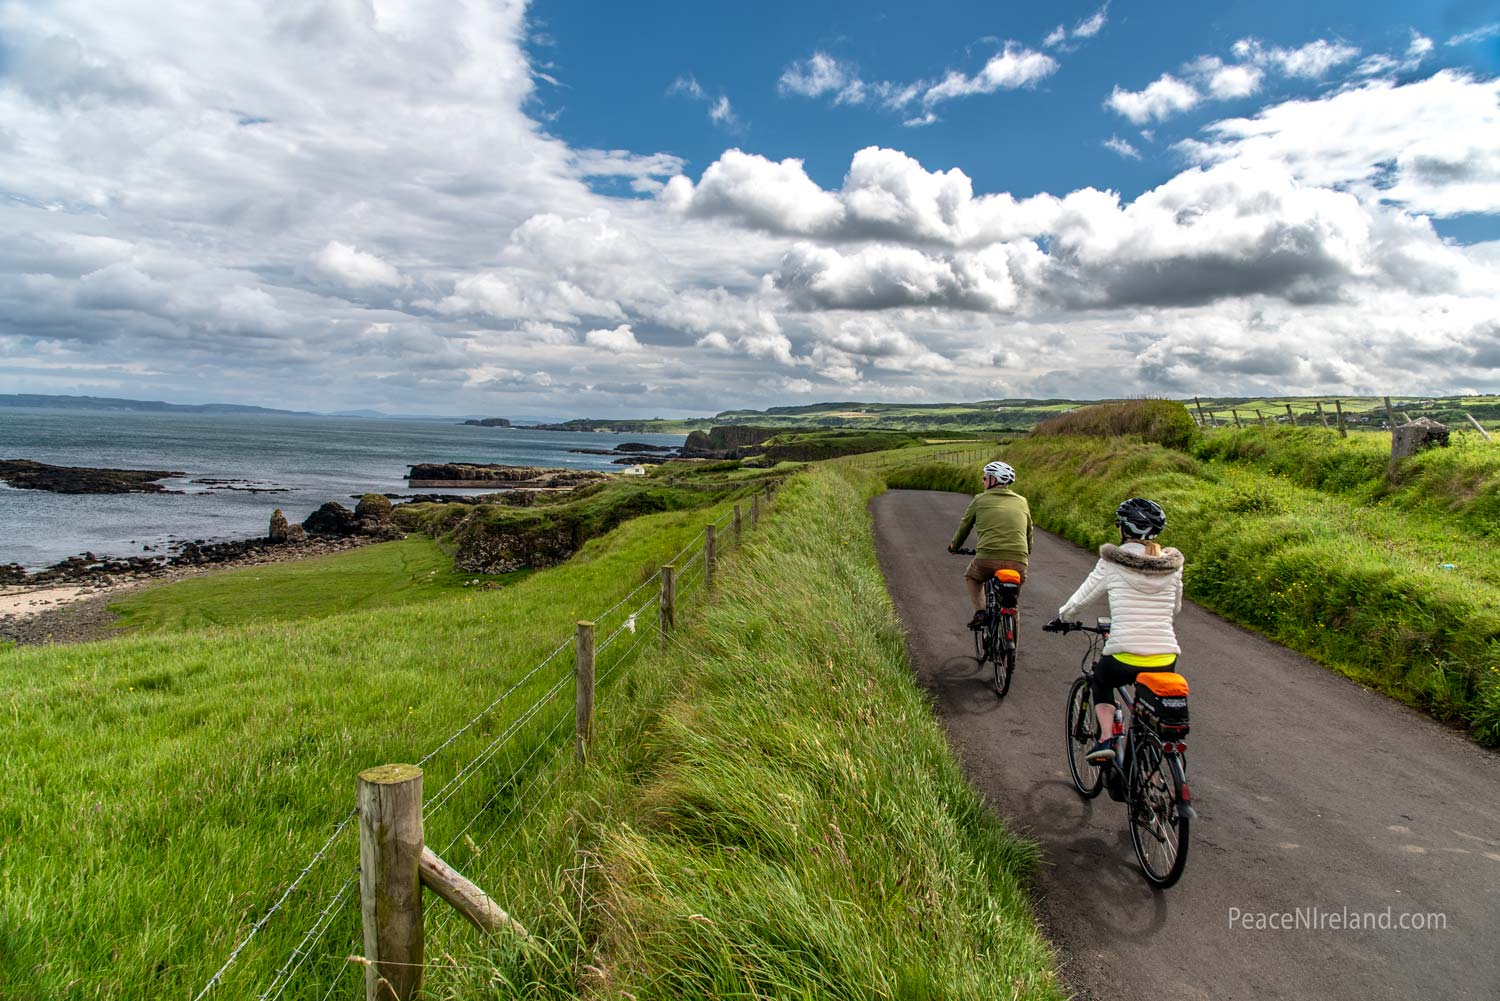 A couple enjoy the scenery on the North Coast, County Antrim, Northern Ireland